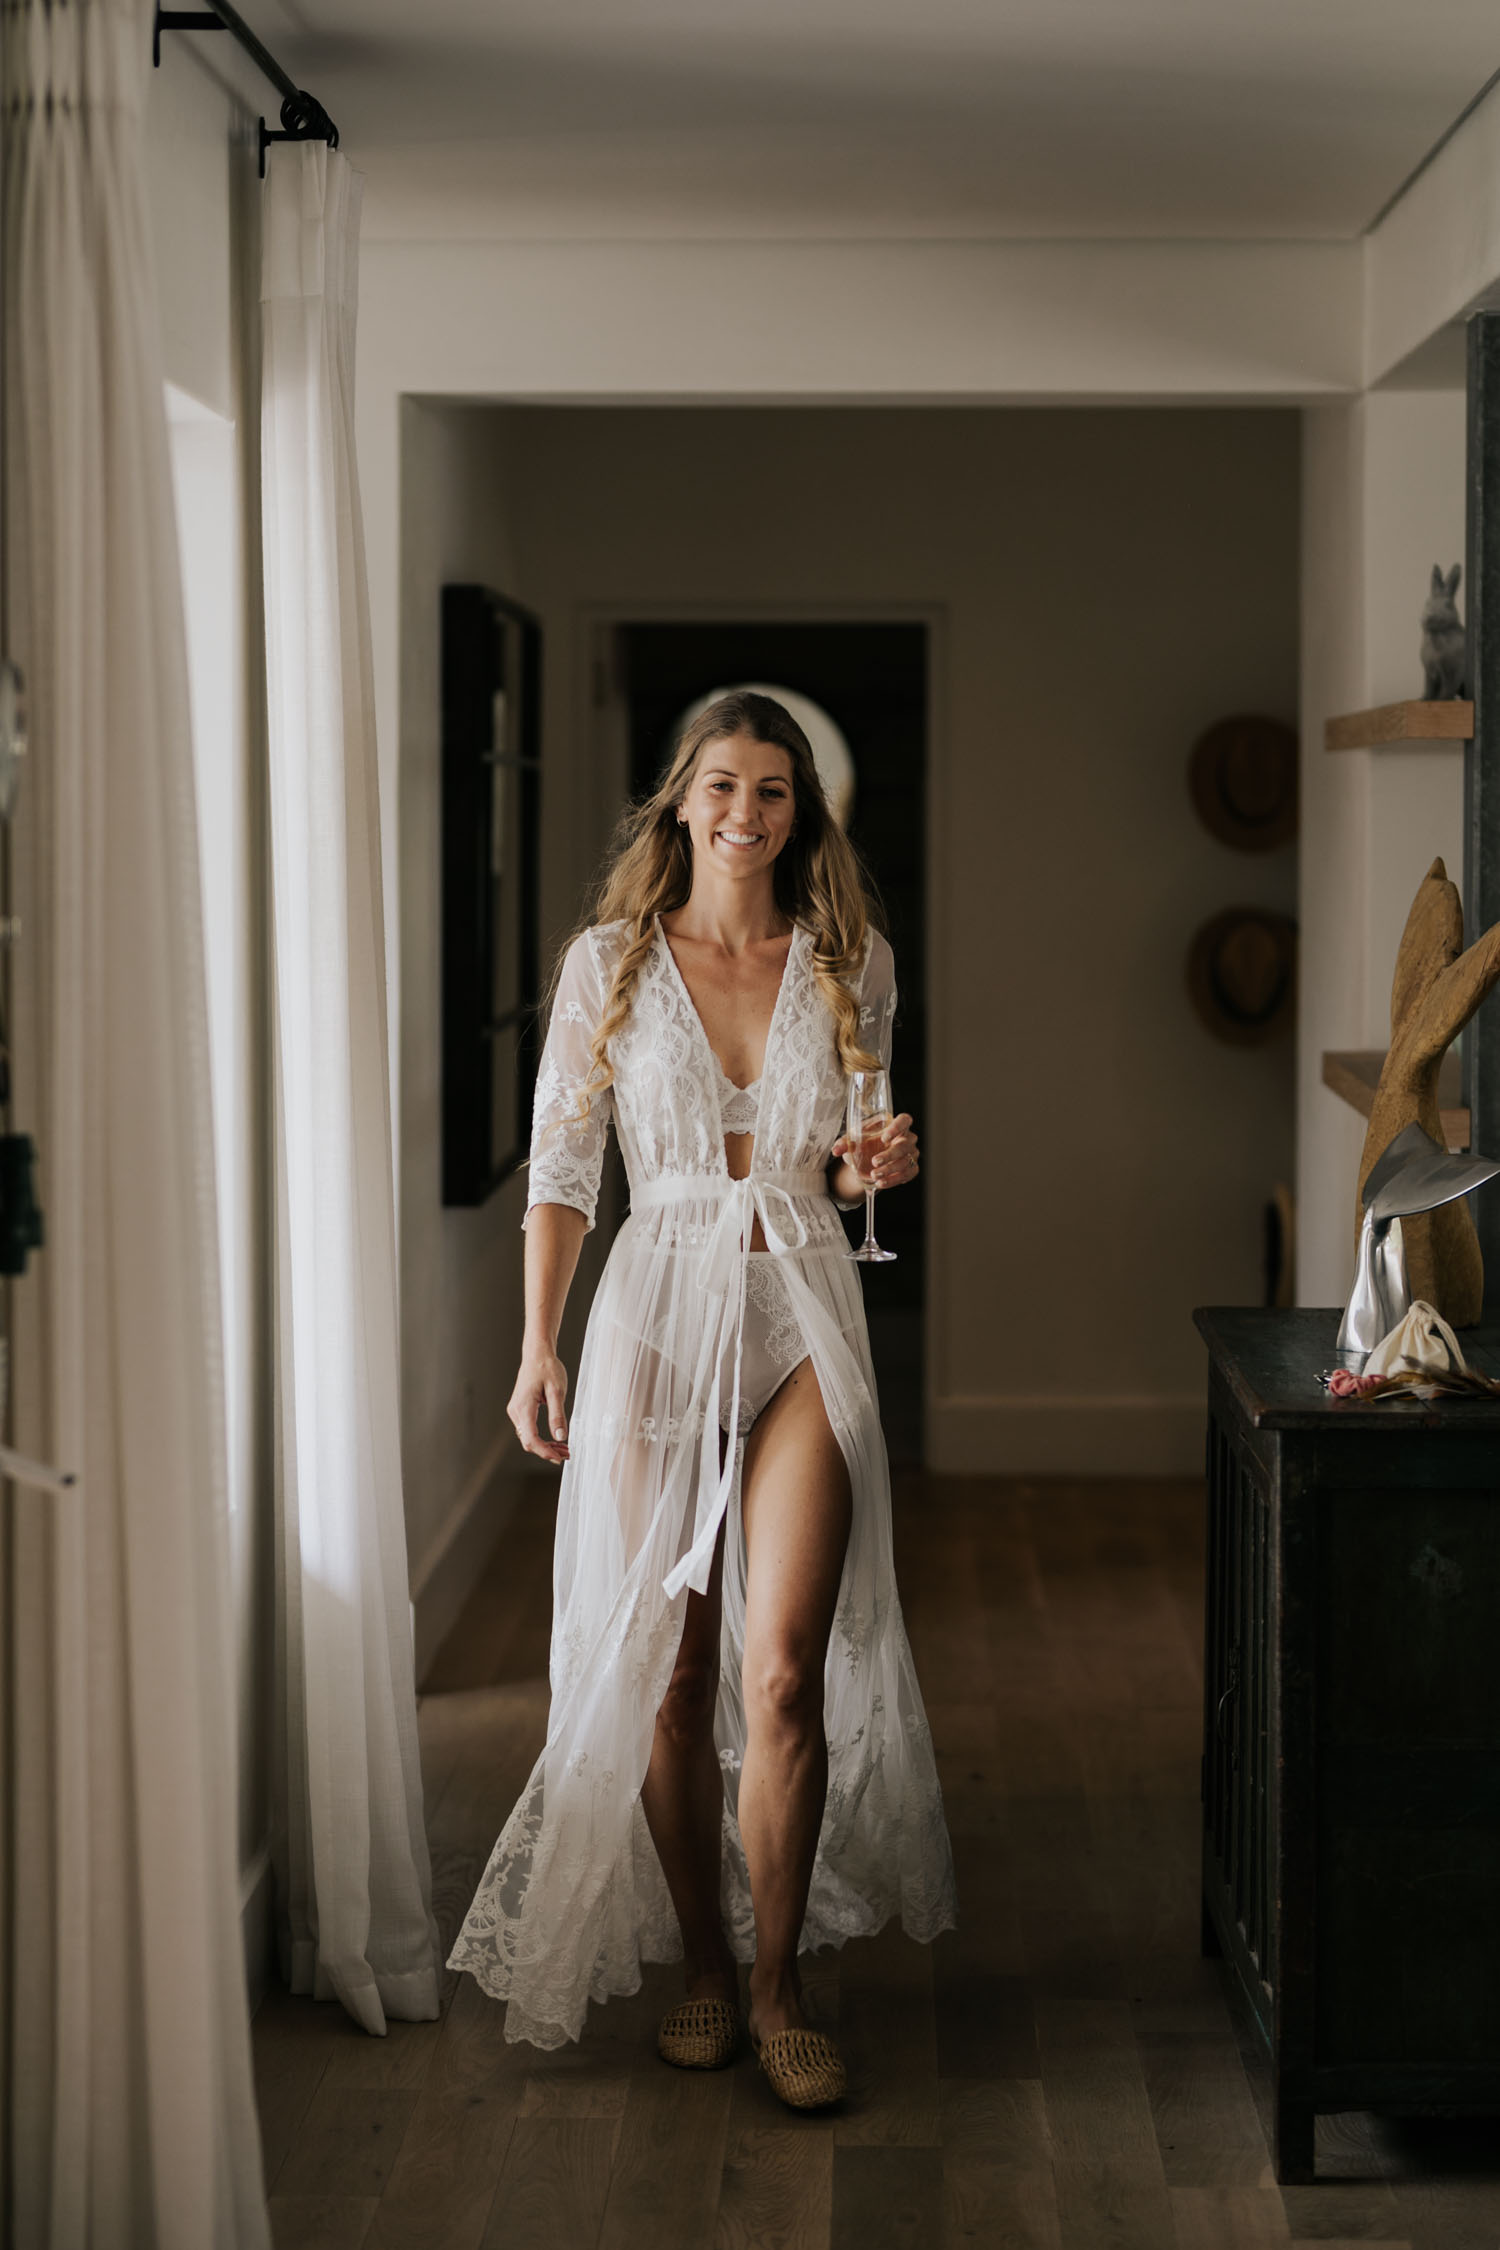 Beautiful boho bride lace gown for getting ready wedding photos